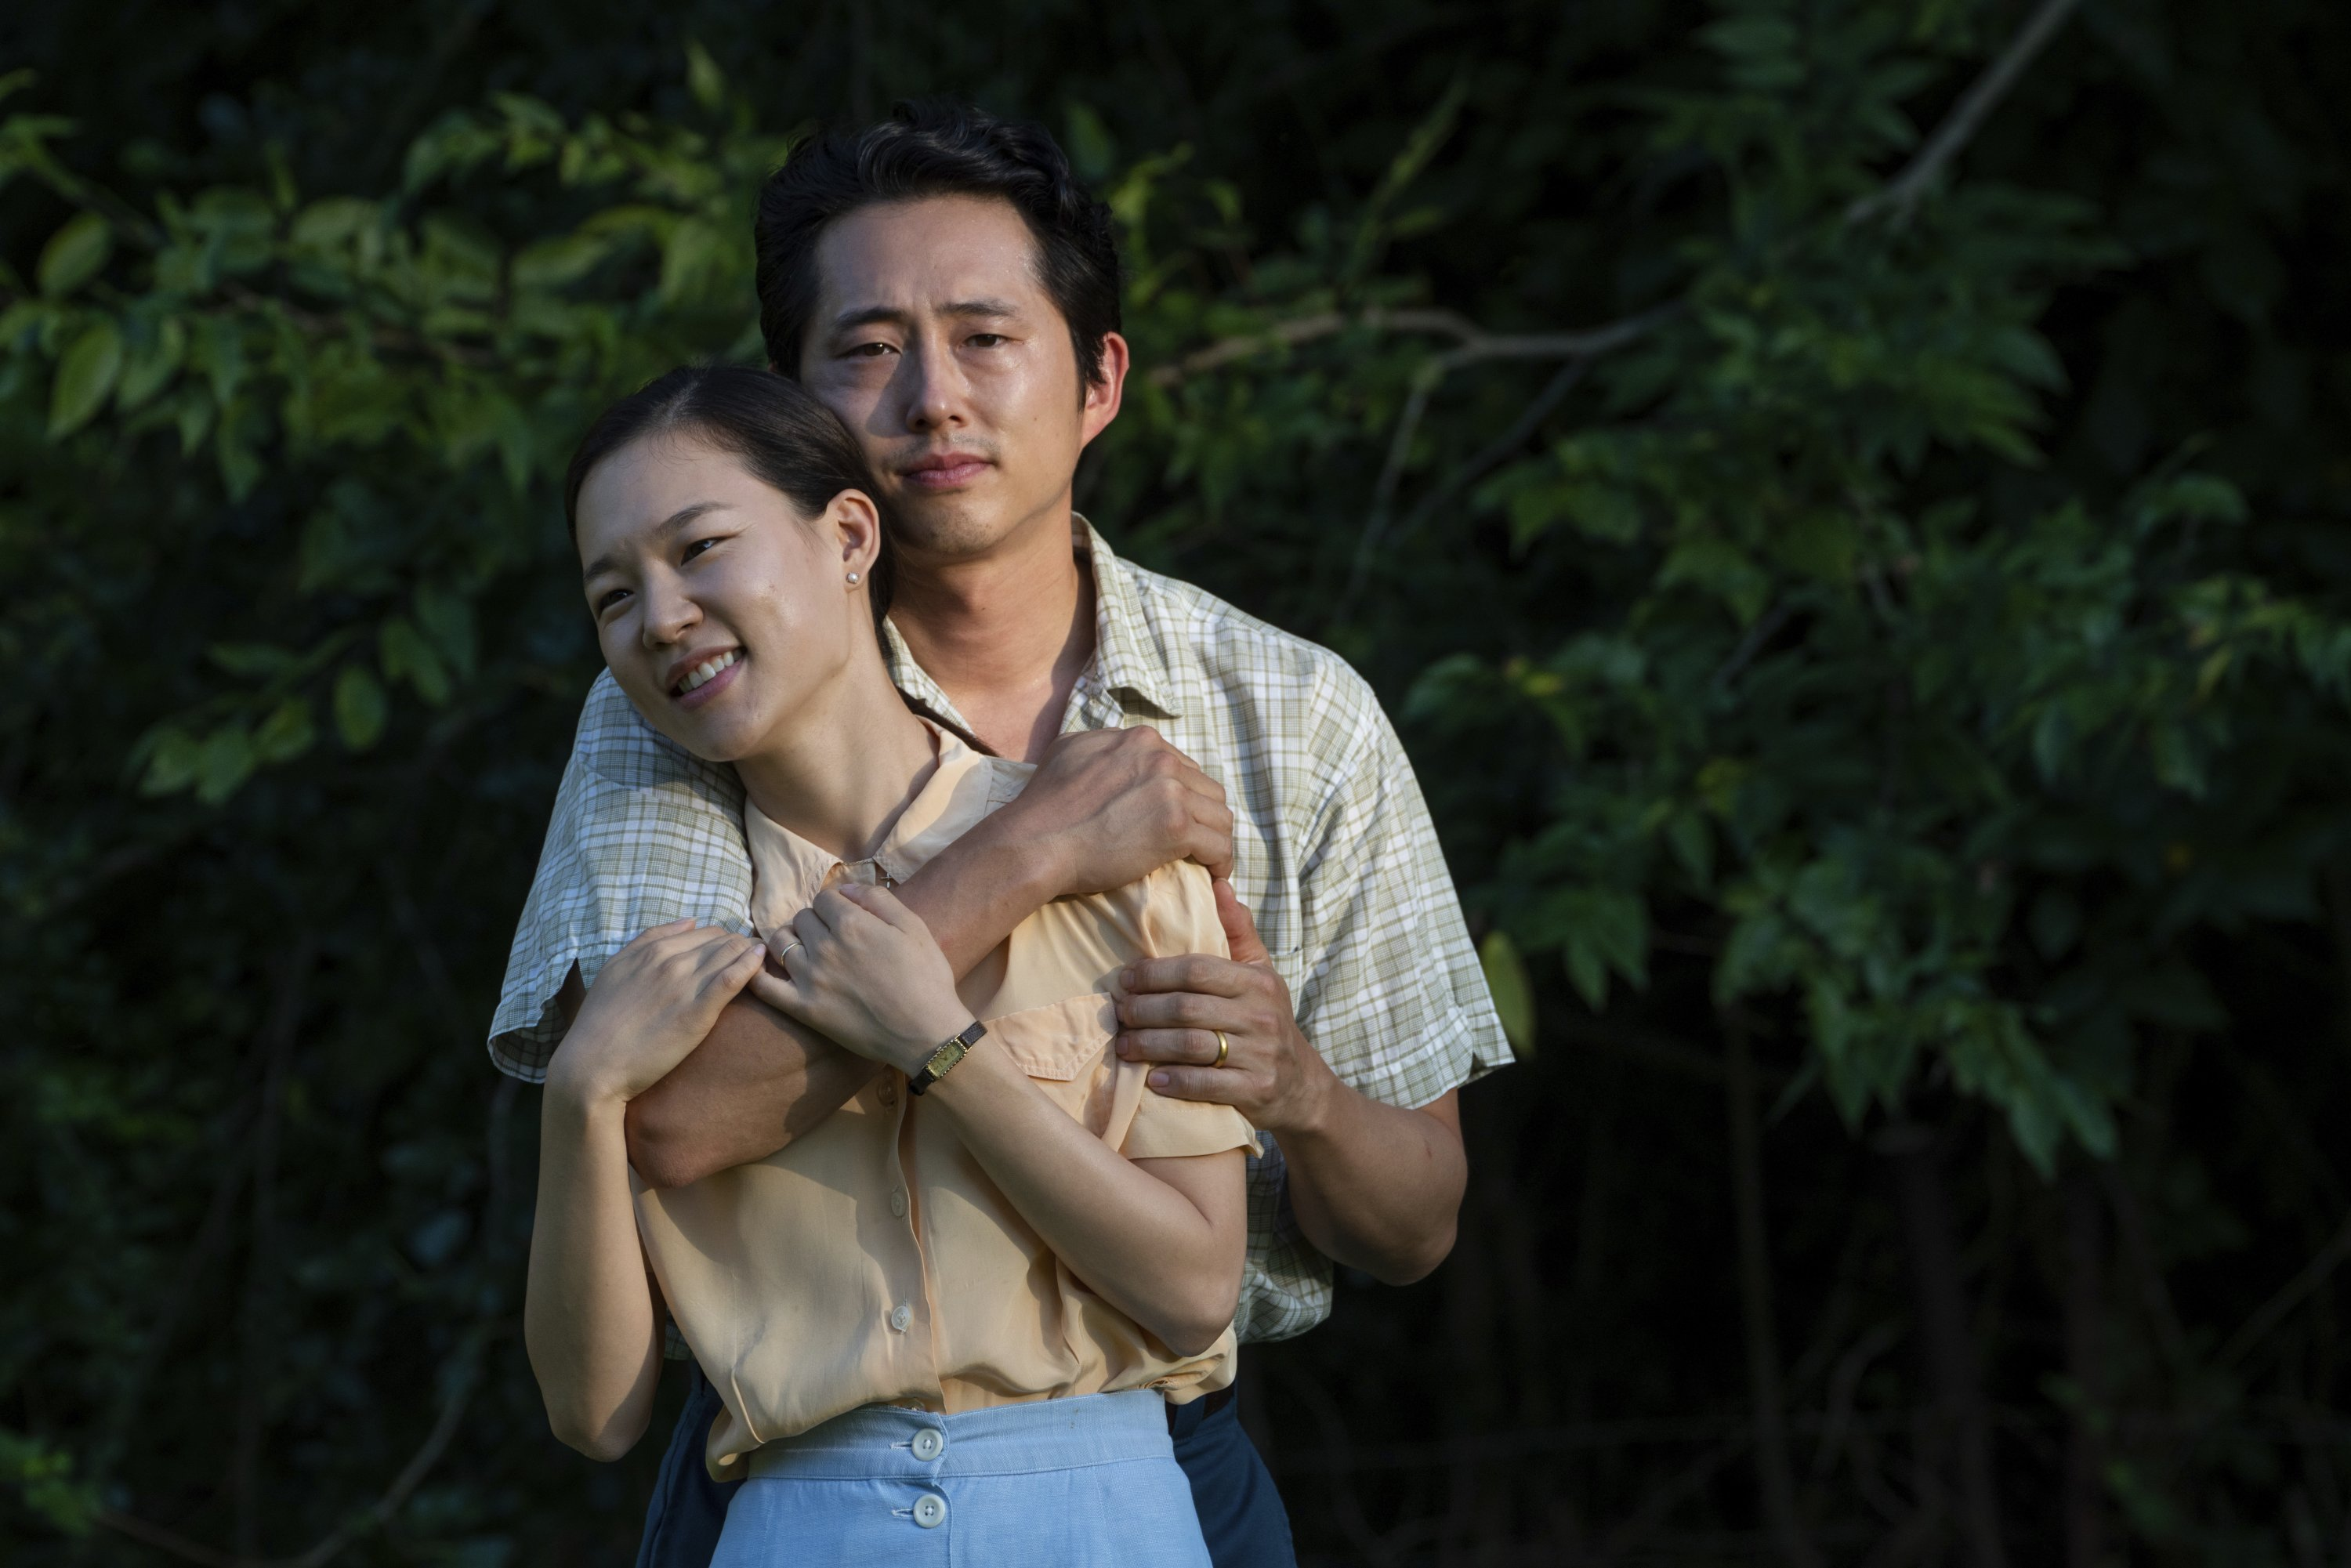 Korean 'Minari' takes Hollywood by storm after 'Parasite' in 2019 | Daily  Sabah